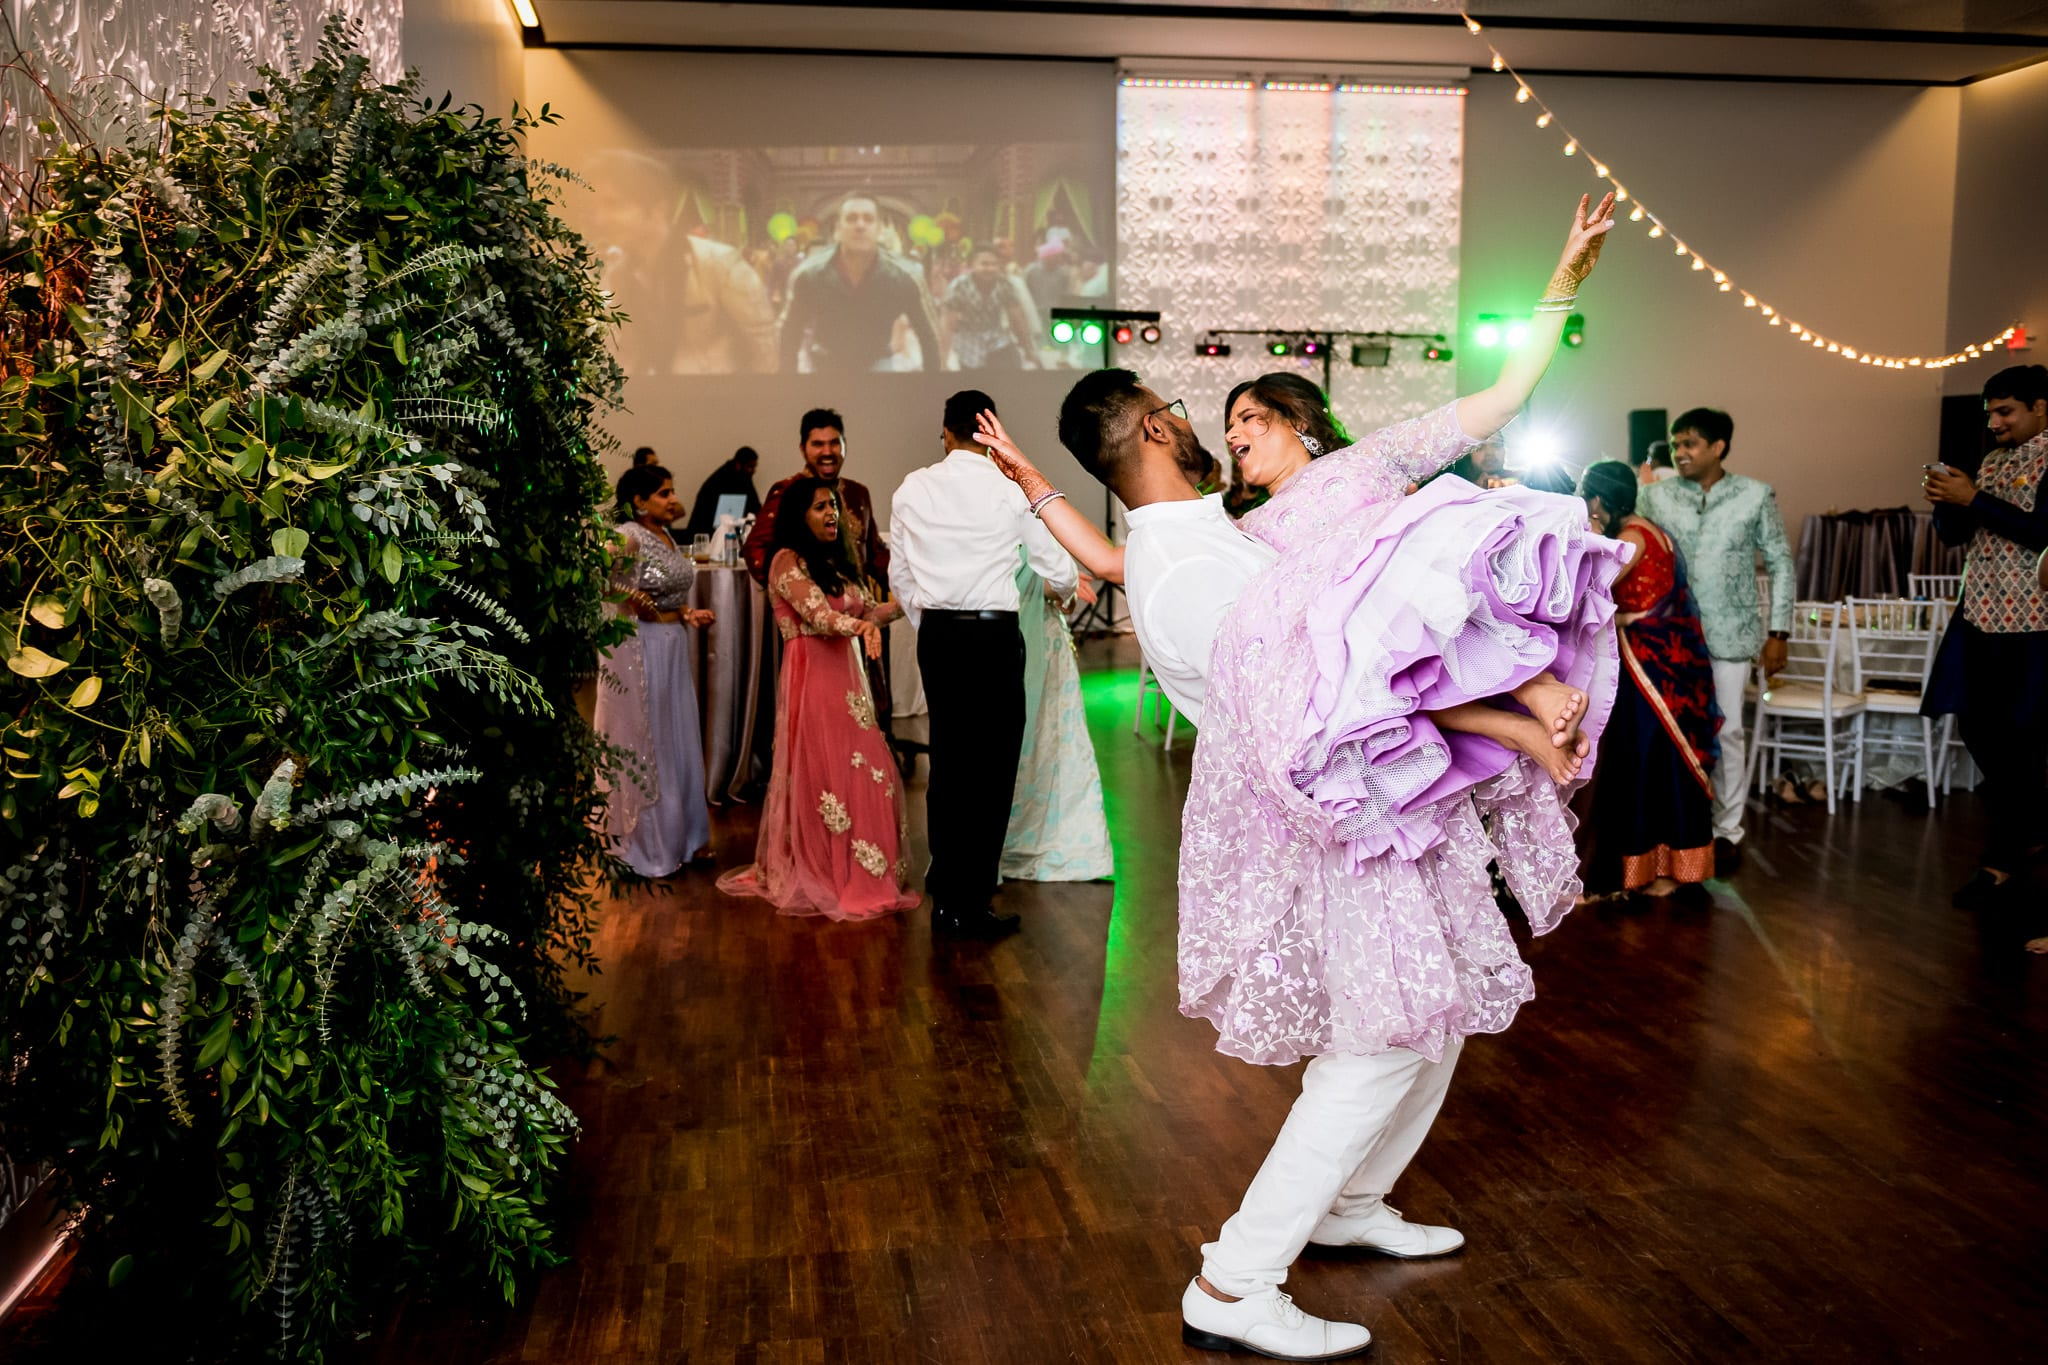 Groom picks up his bride and twirls her around